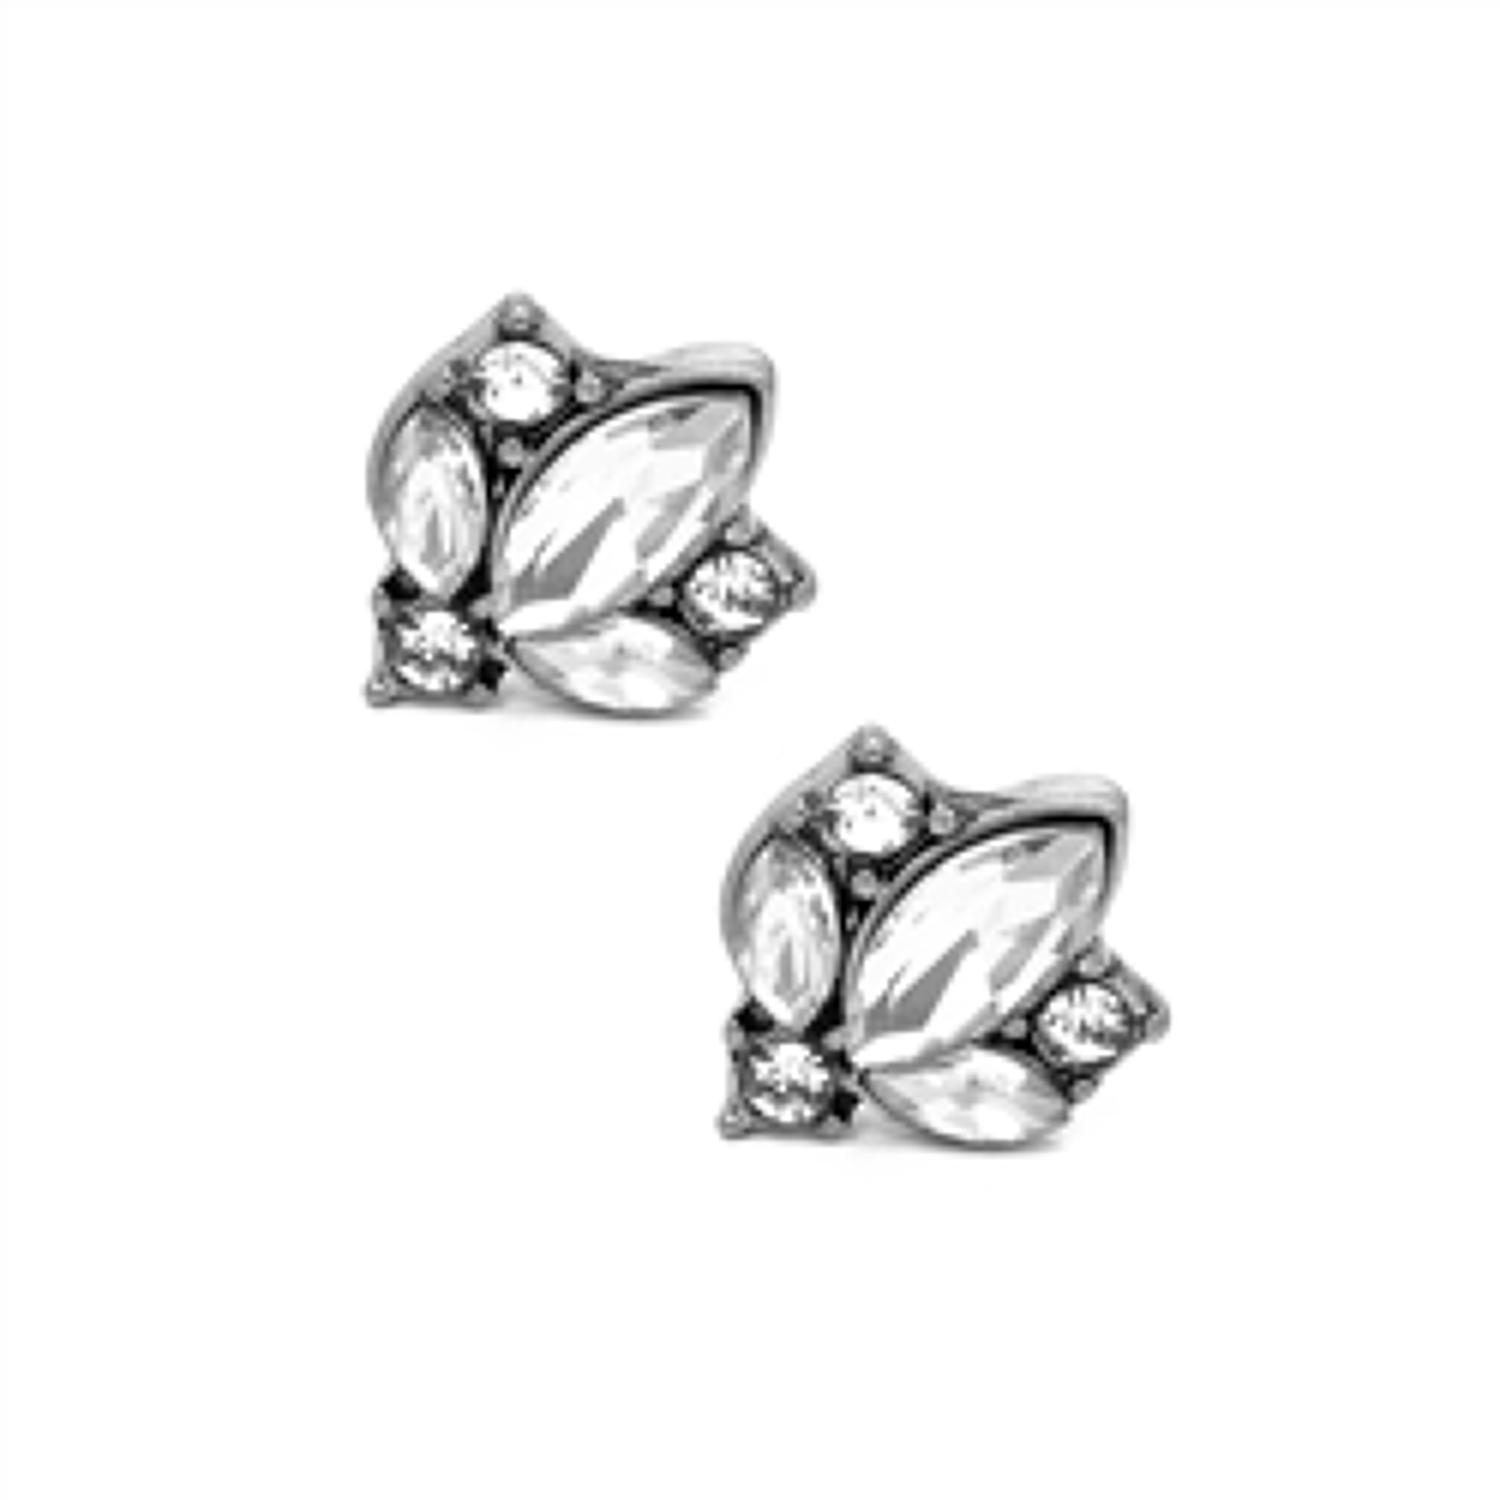 White Leaf - Crystal cluster clear antique silver finish earrings